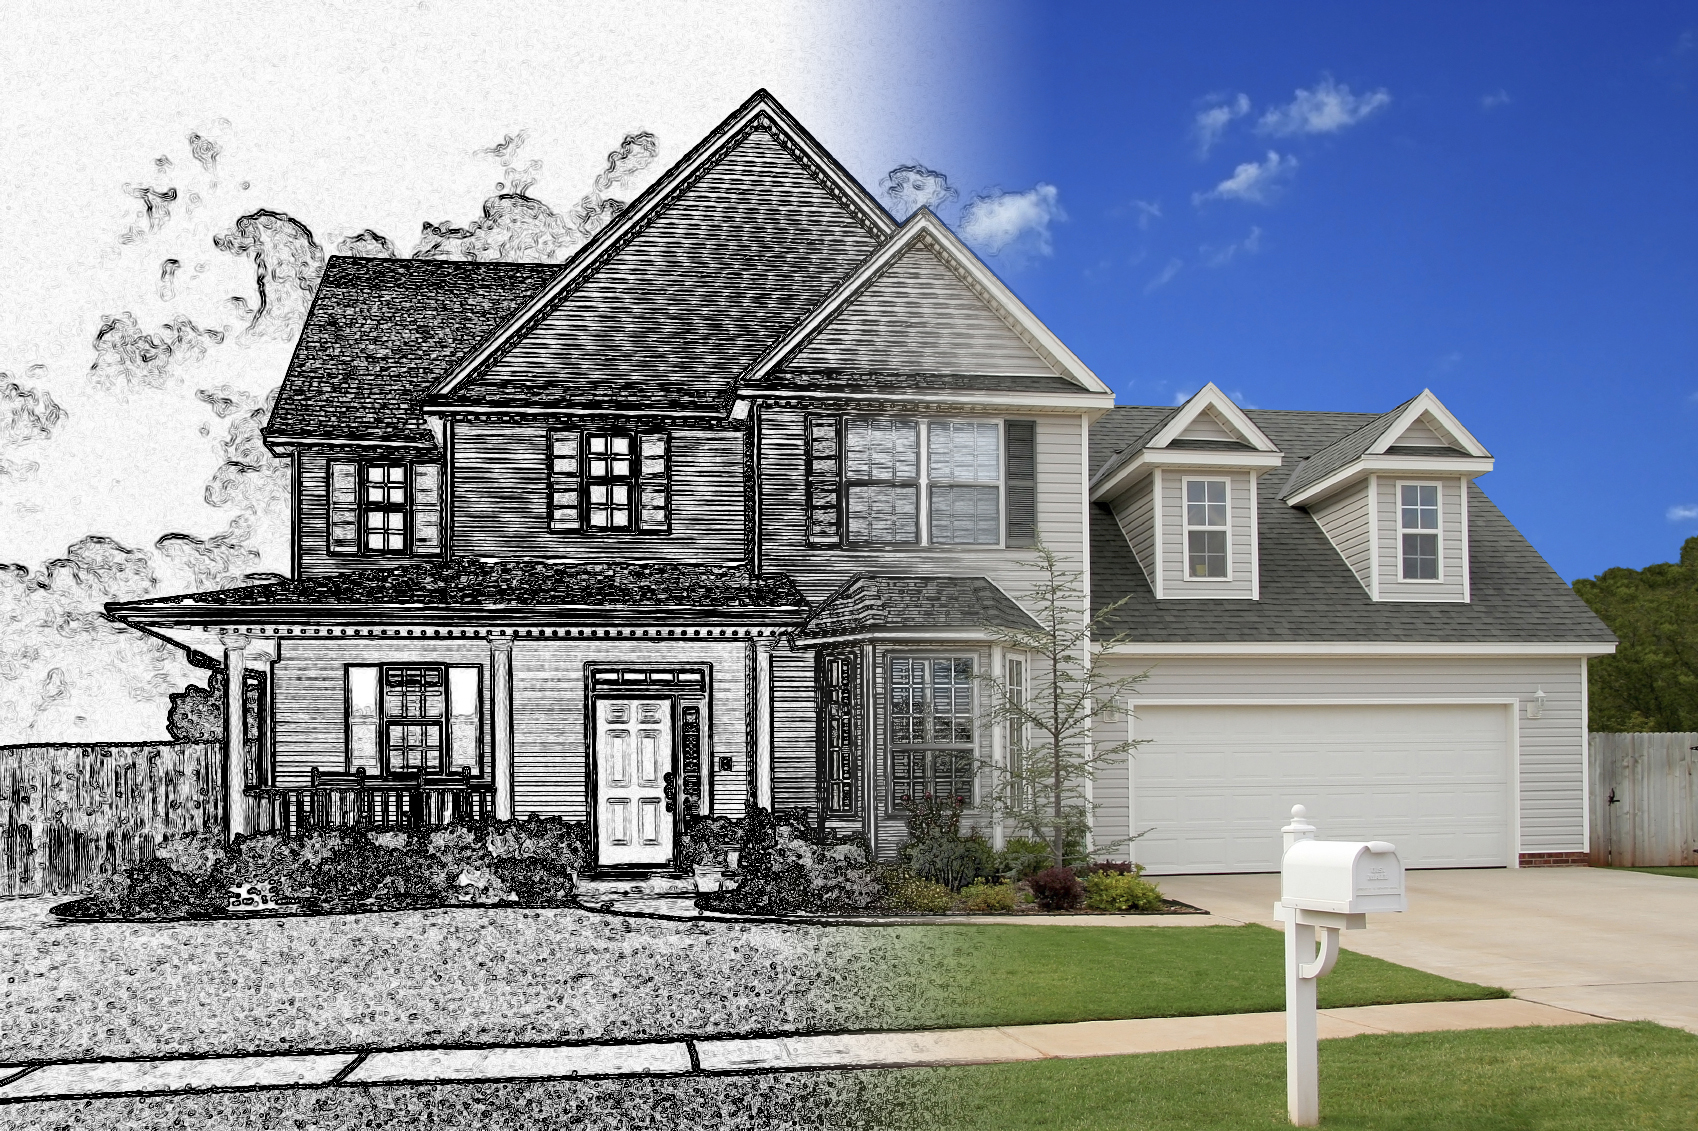 Transition from photo to sketchphotoshop tutorial photoshop sketched house 600x399 transition from photo to sketchphotoshop tutorial baditri Image collections